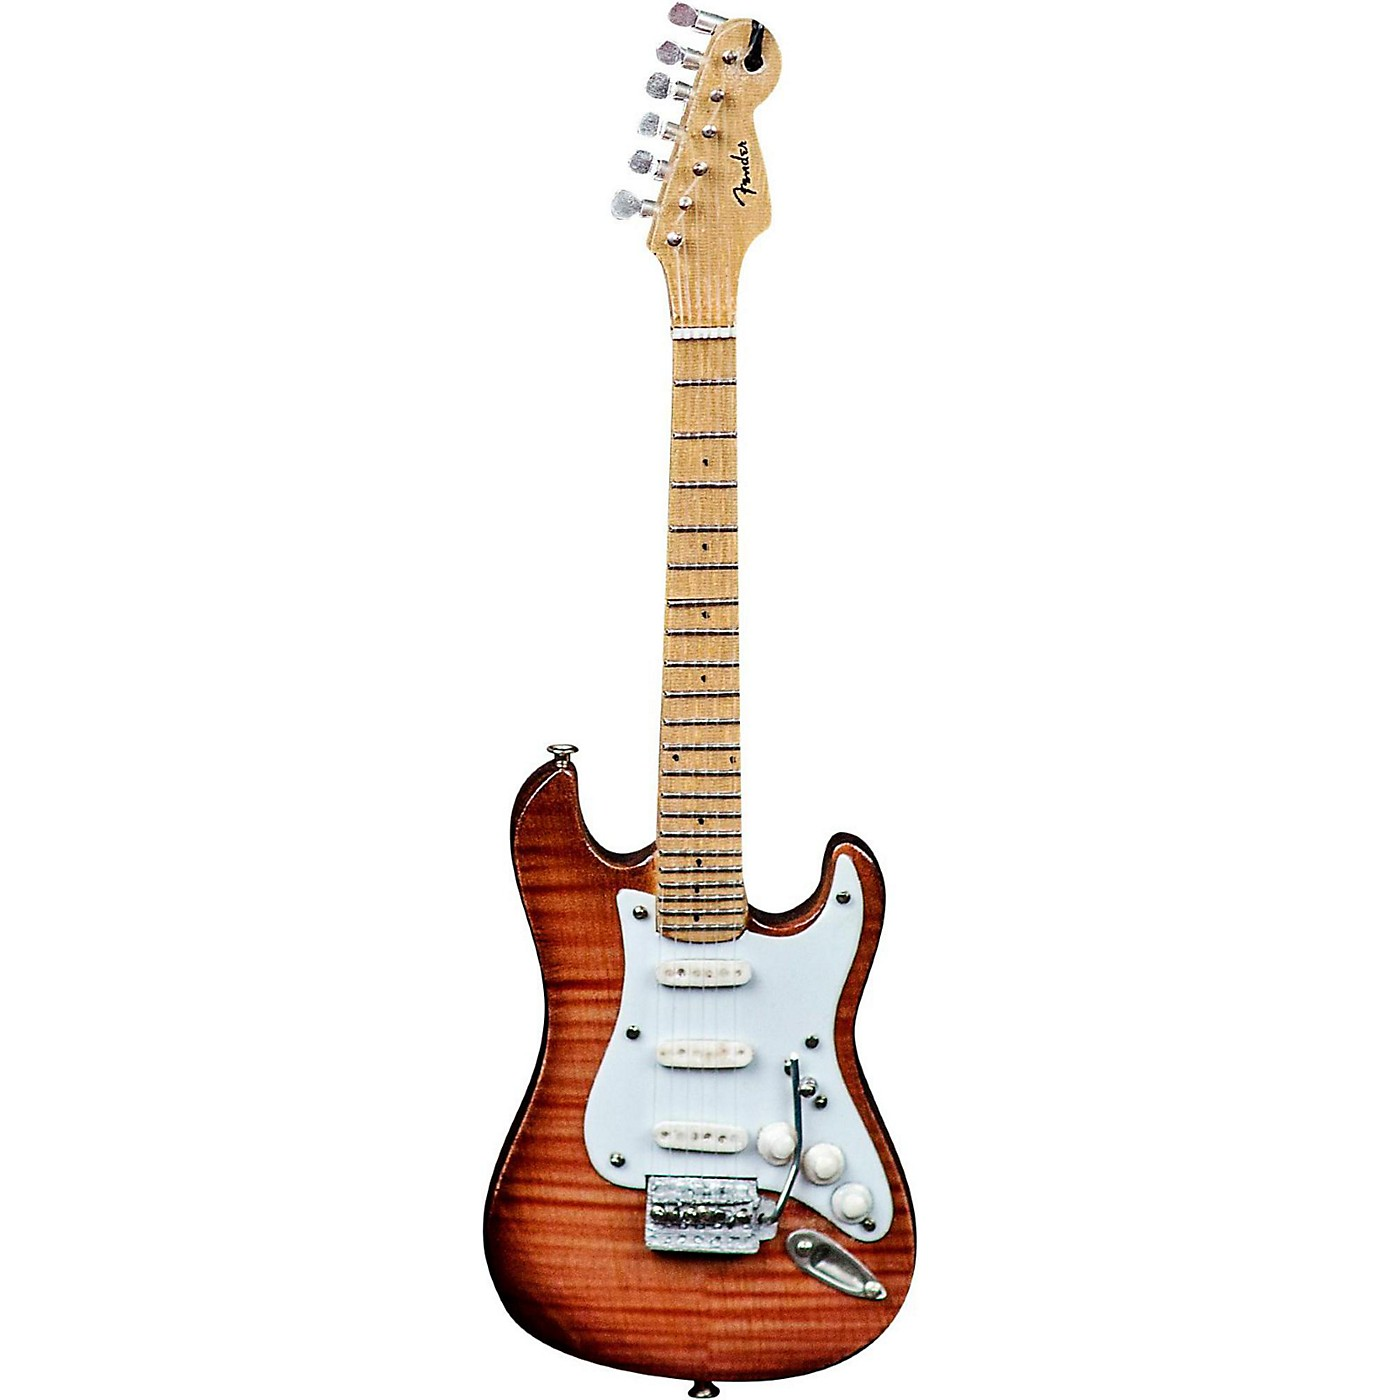 Axe Heaven Fender Select '50s Strat - 6 Inch Holiday Ornament thumbnail